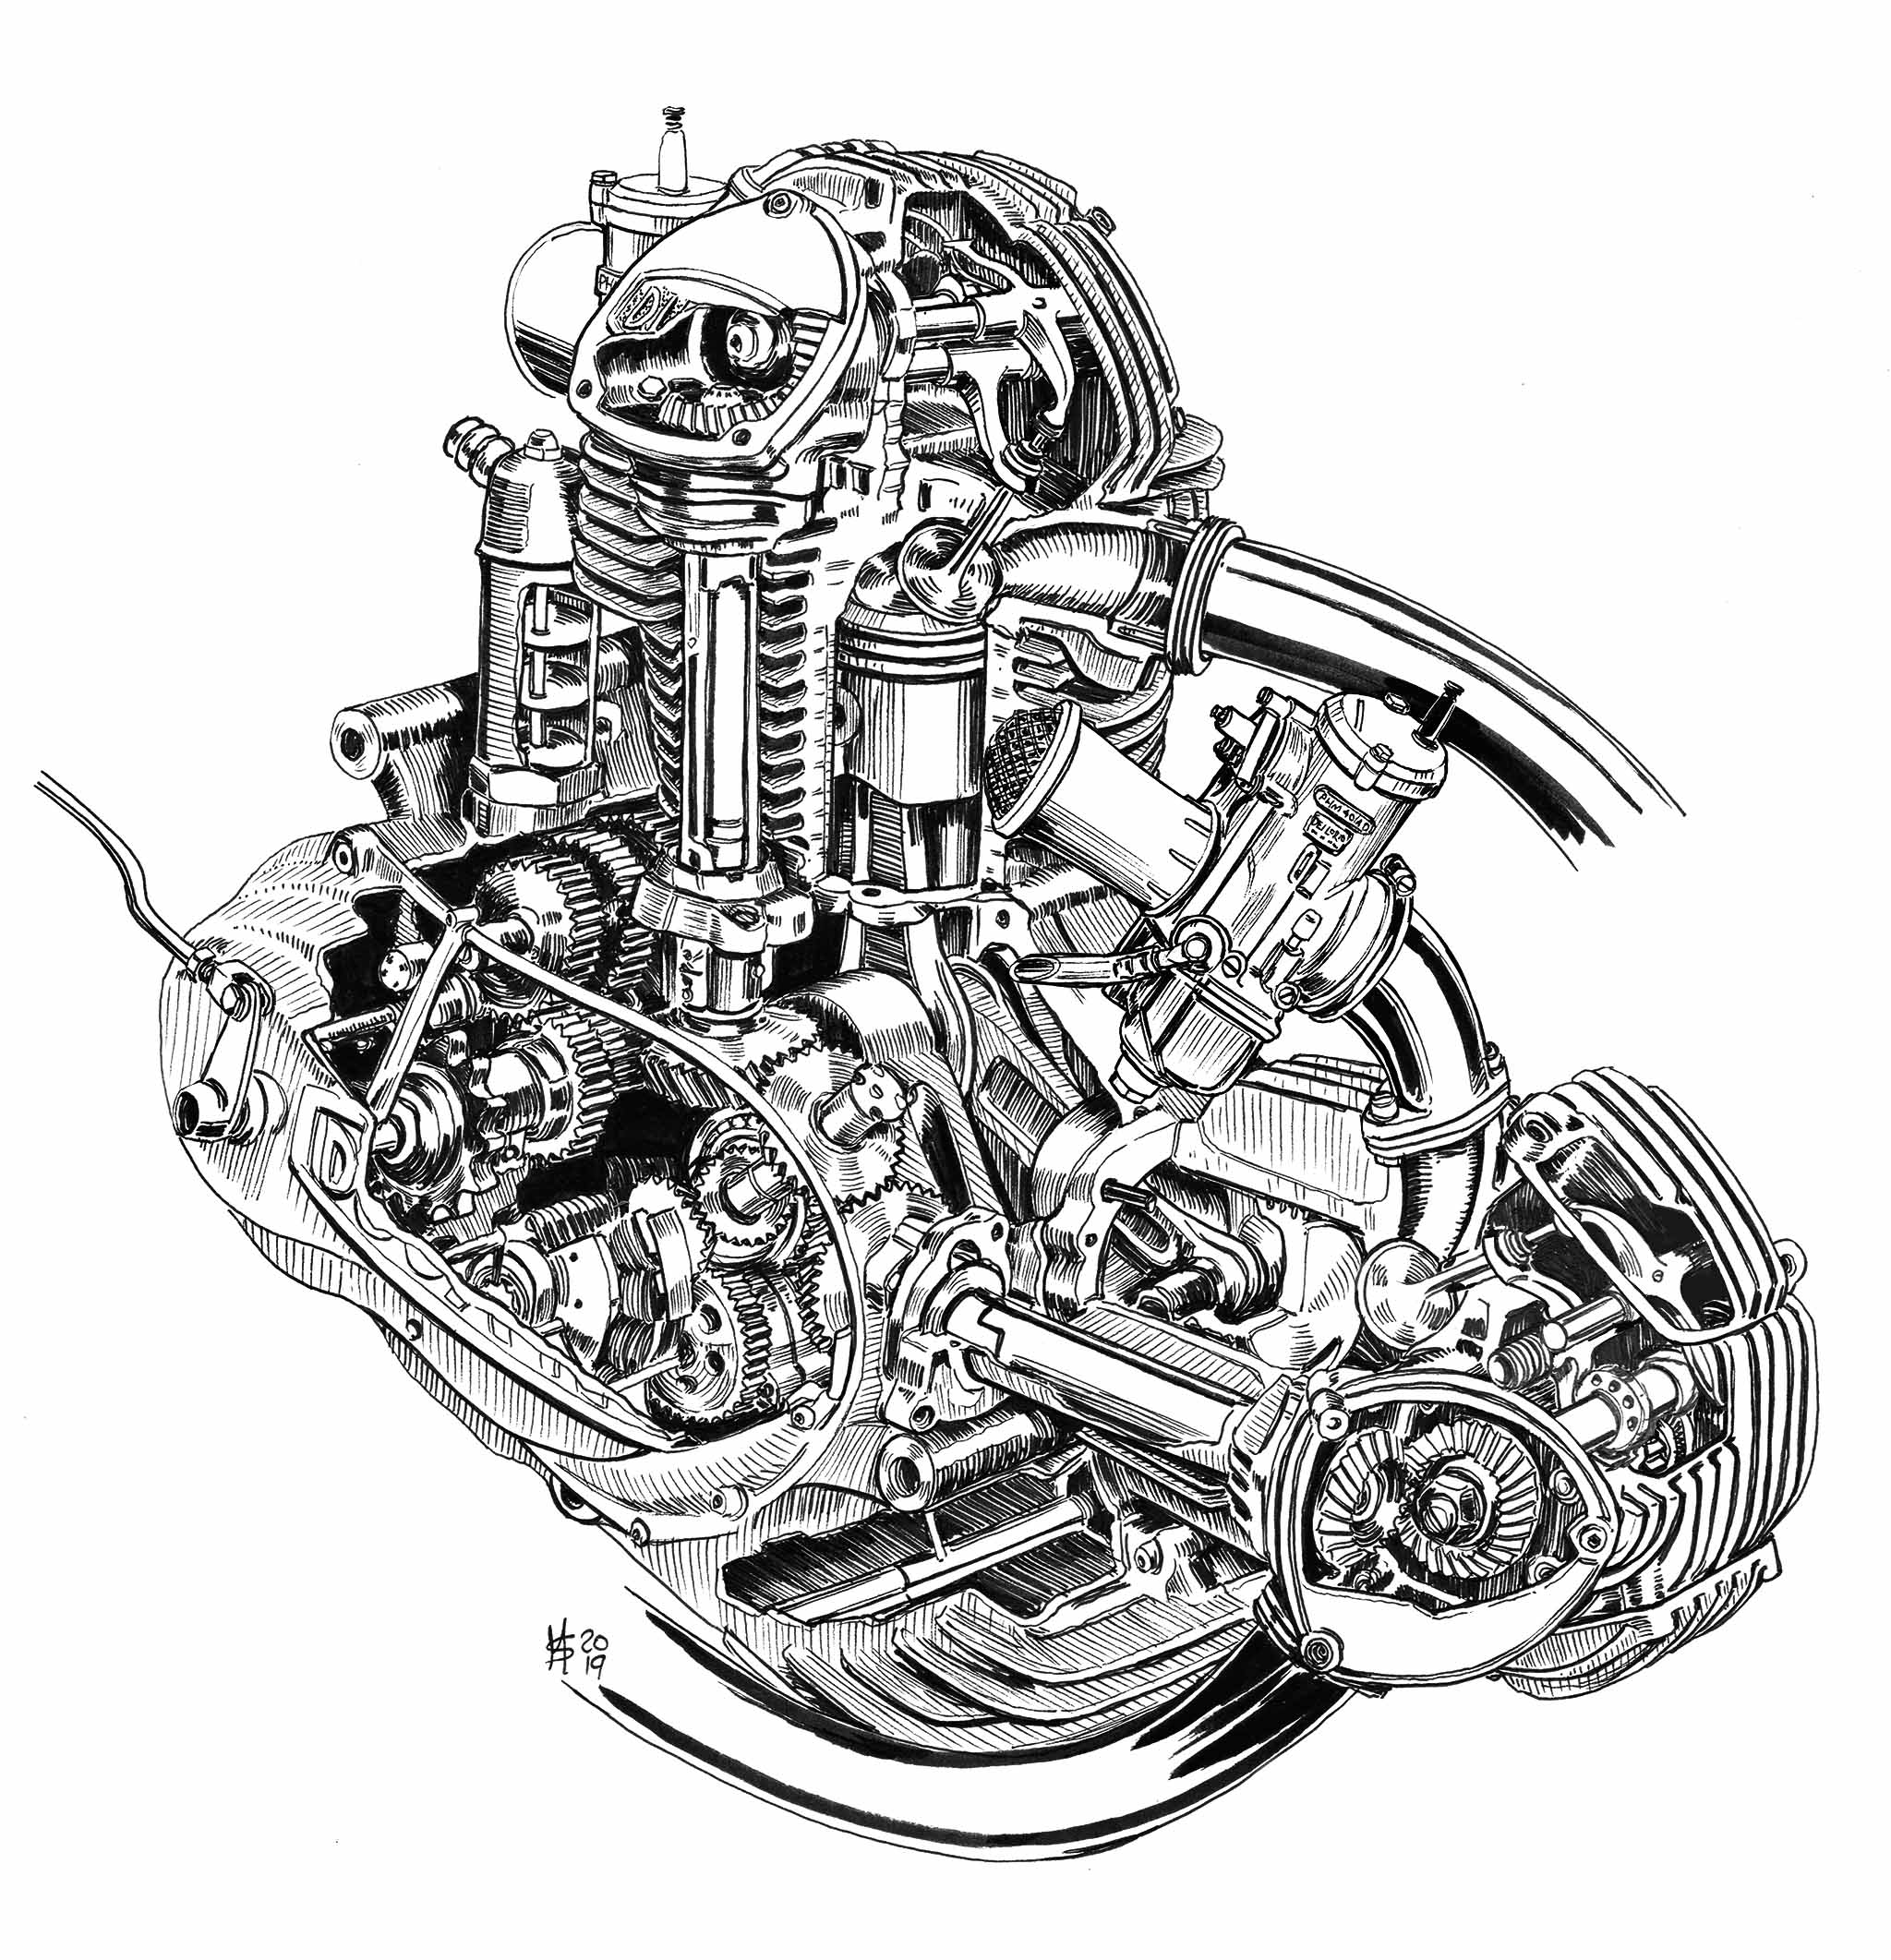 Stock Stories 750SS Engine